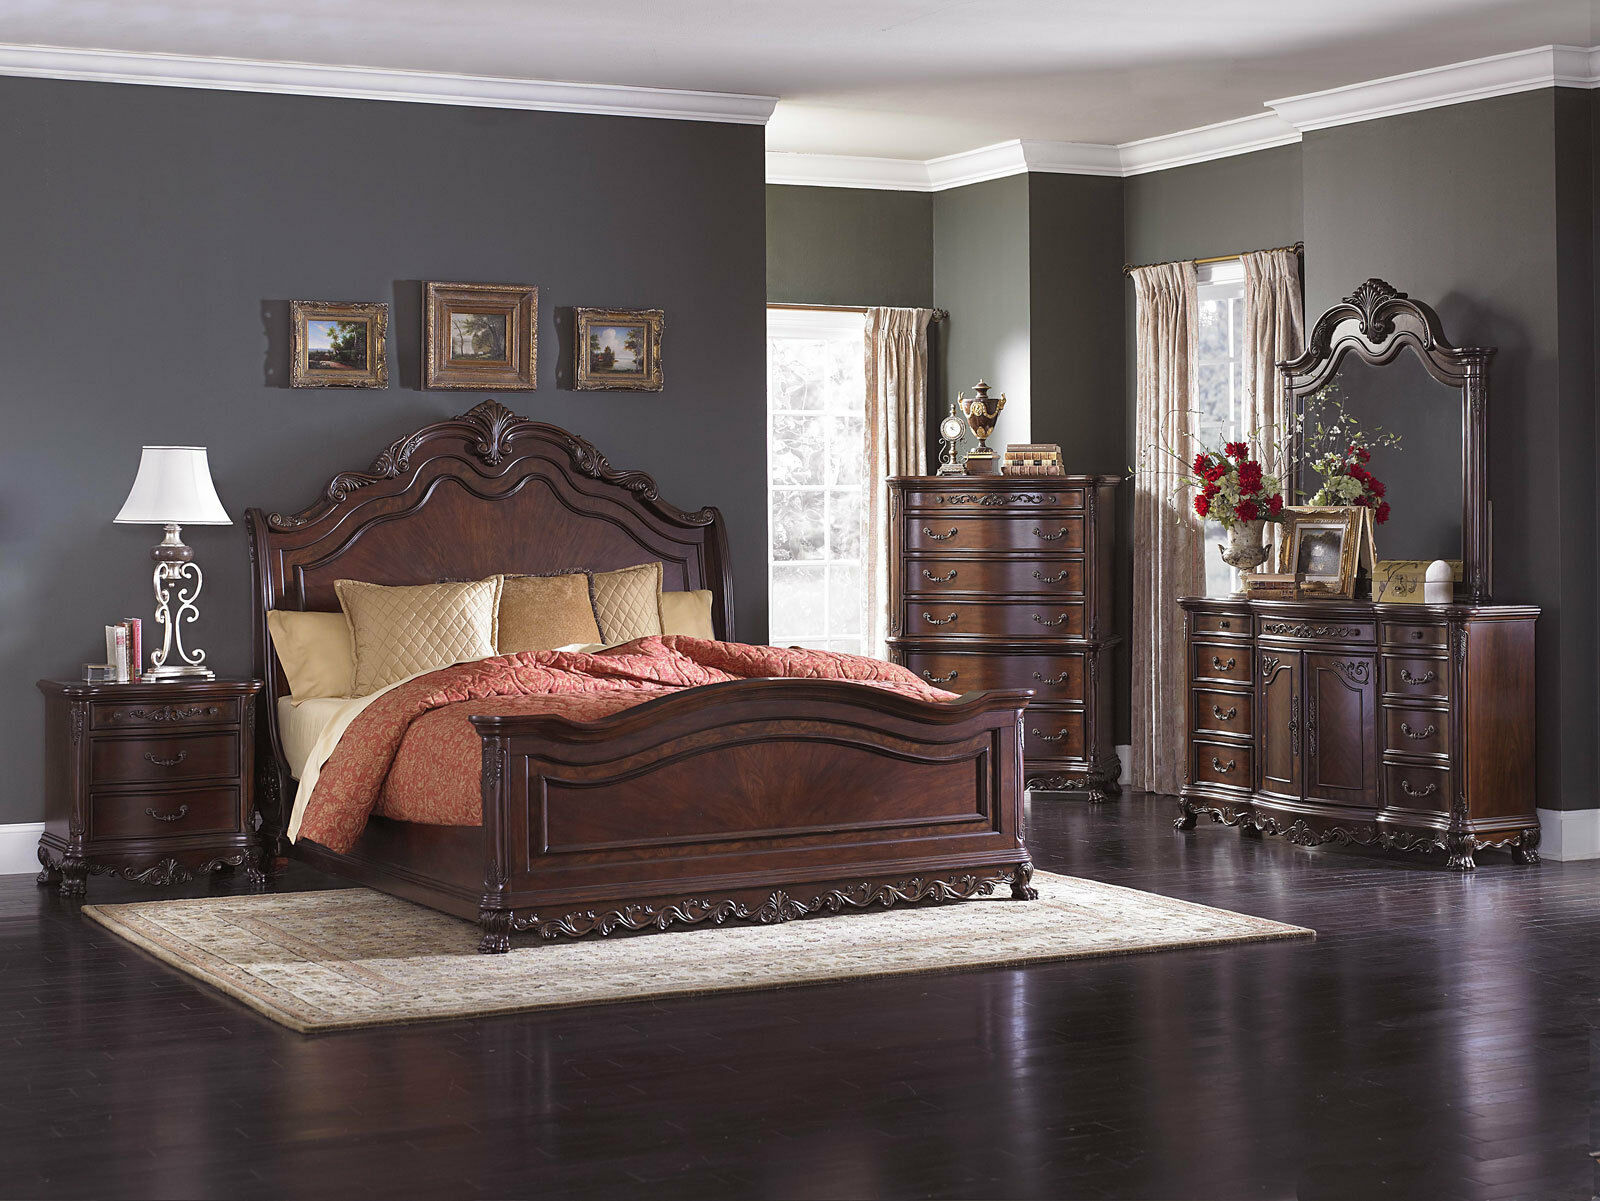 traditional cherry brown 5pcs bedroom set furniture w king size sleigh bed ia5f